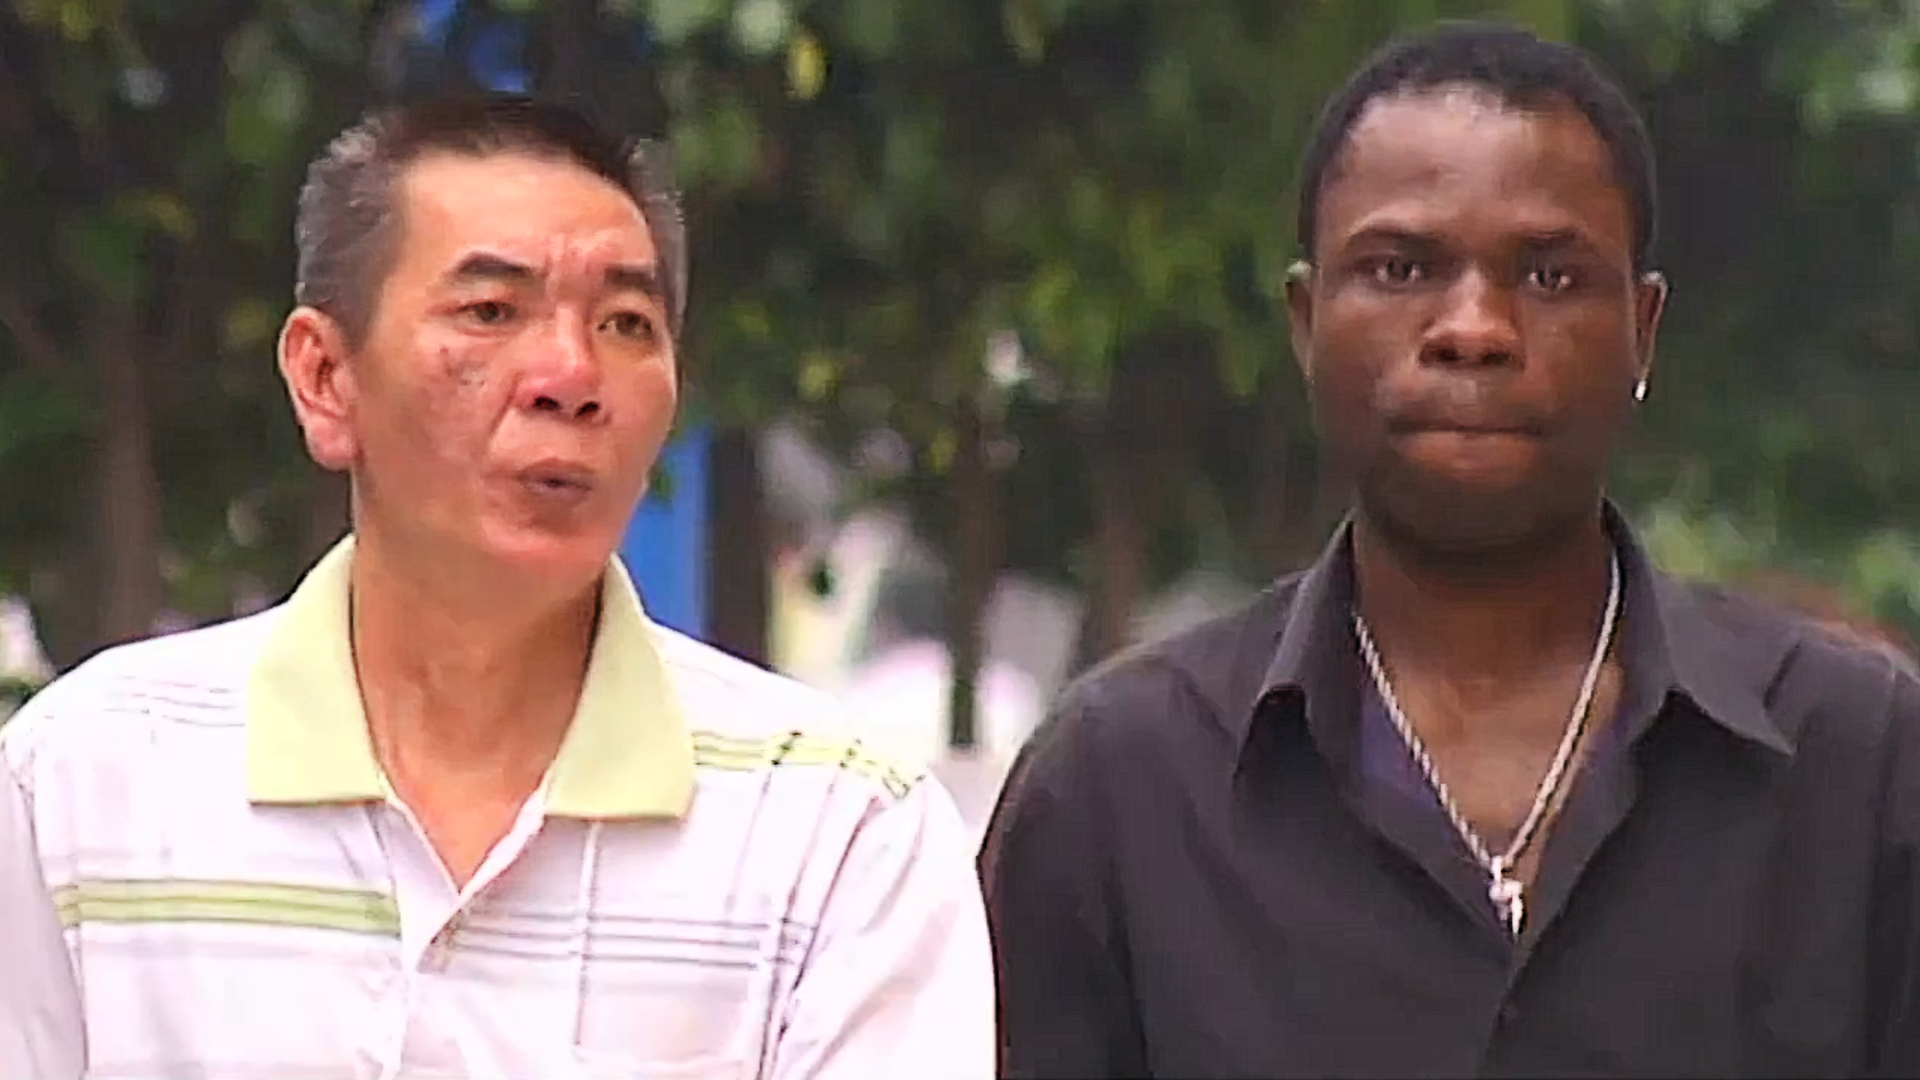 African nationals 'mistreated, evicted' in China over coronavirus